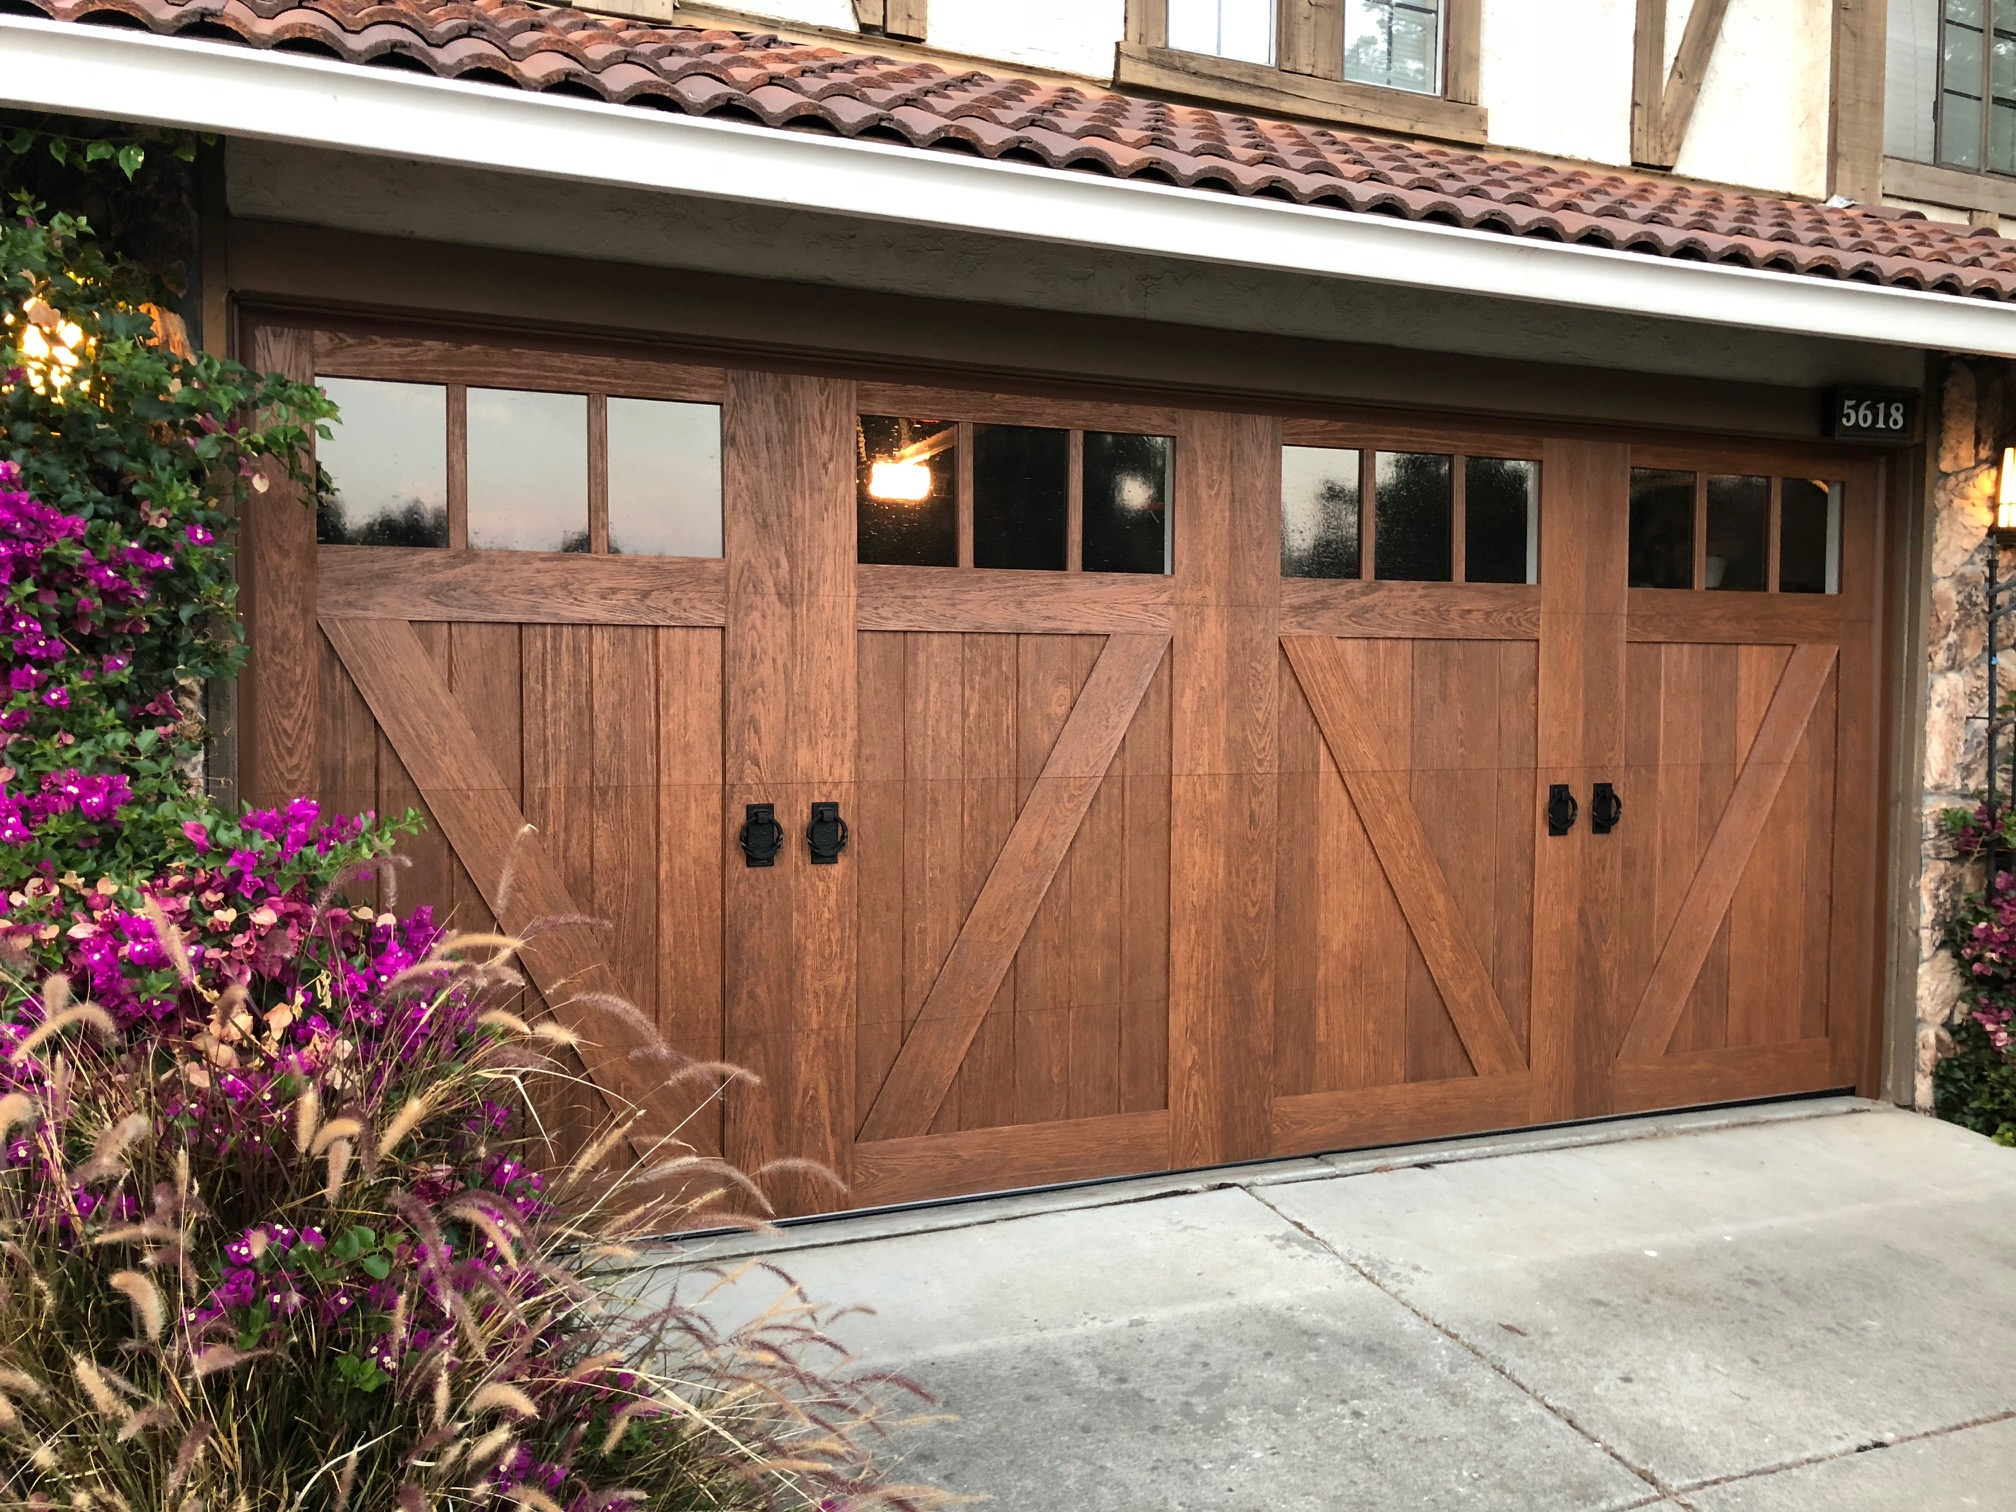 Doors To Garage: Welcome To The All-New Eppler Garage Doors Website